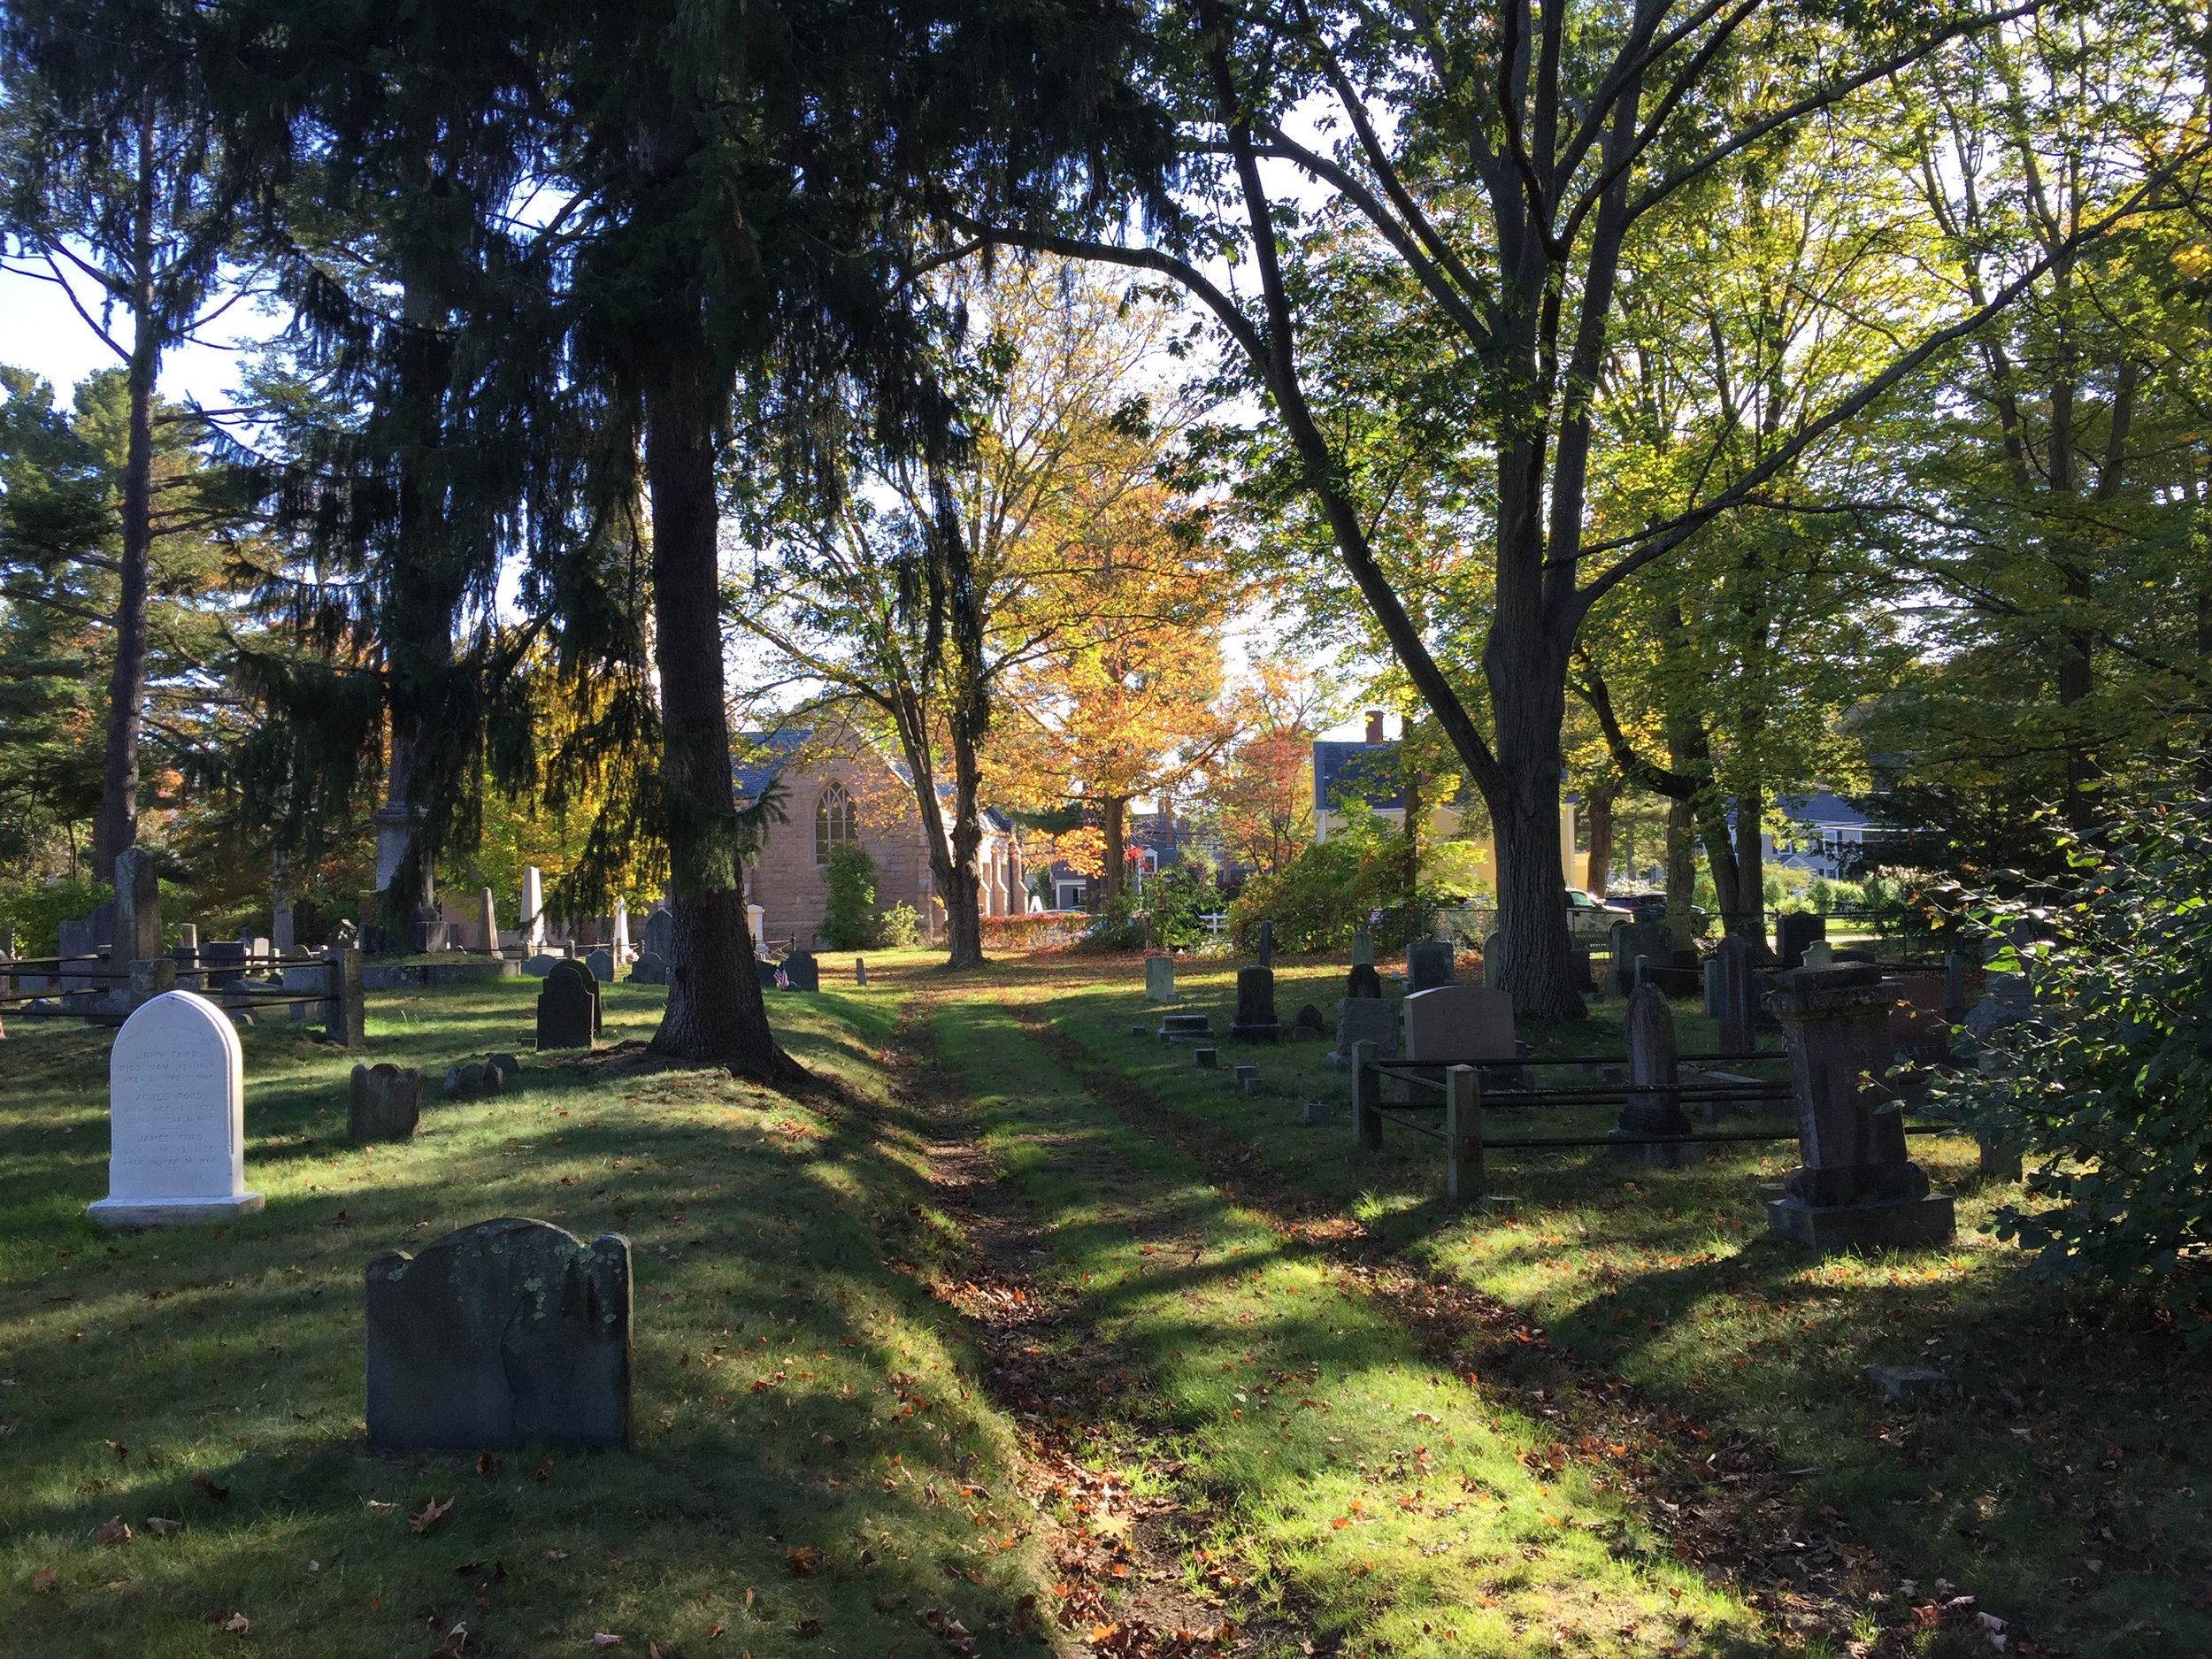 View of Old Village Cemetery in Dedham, MA